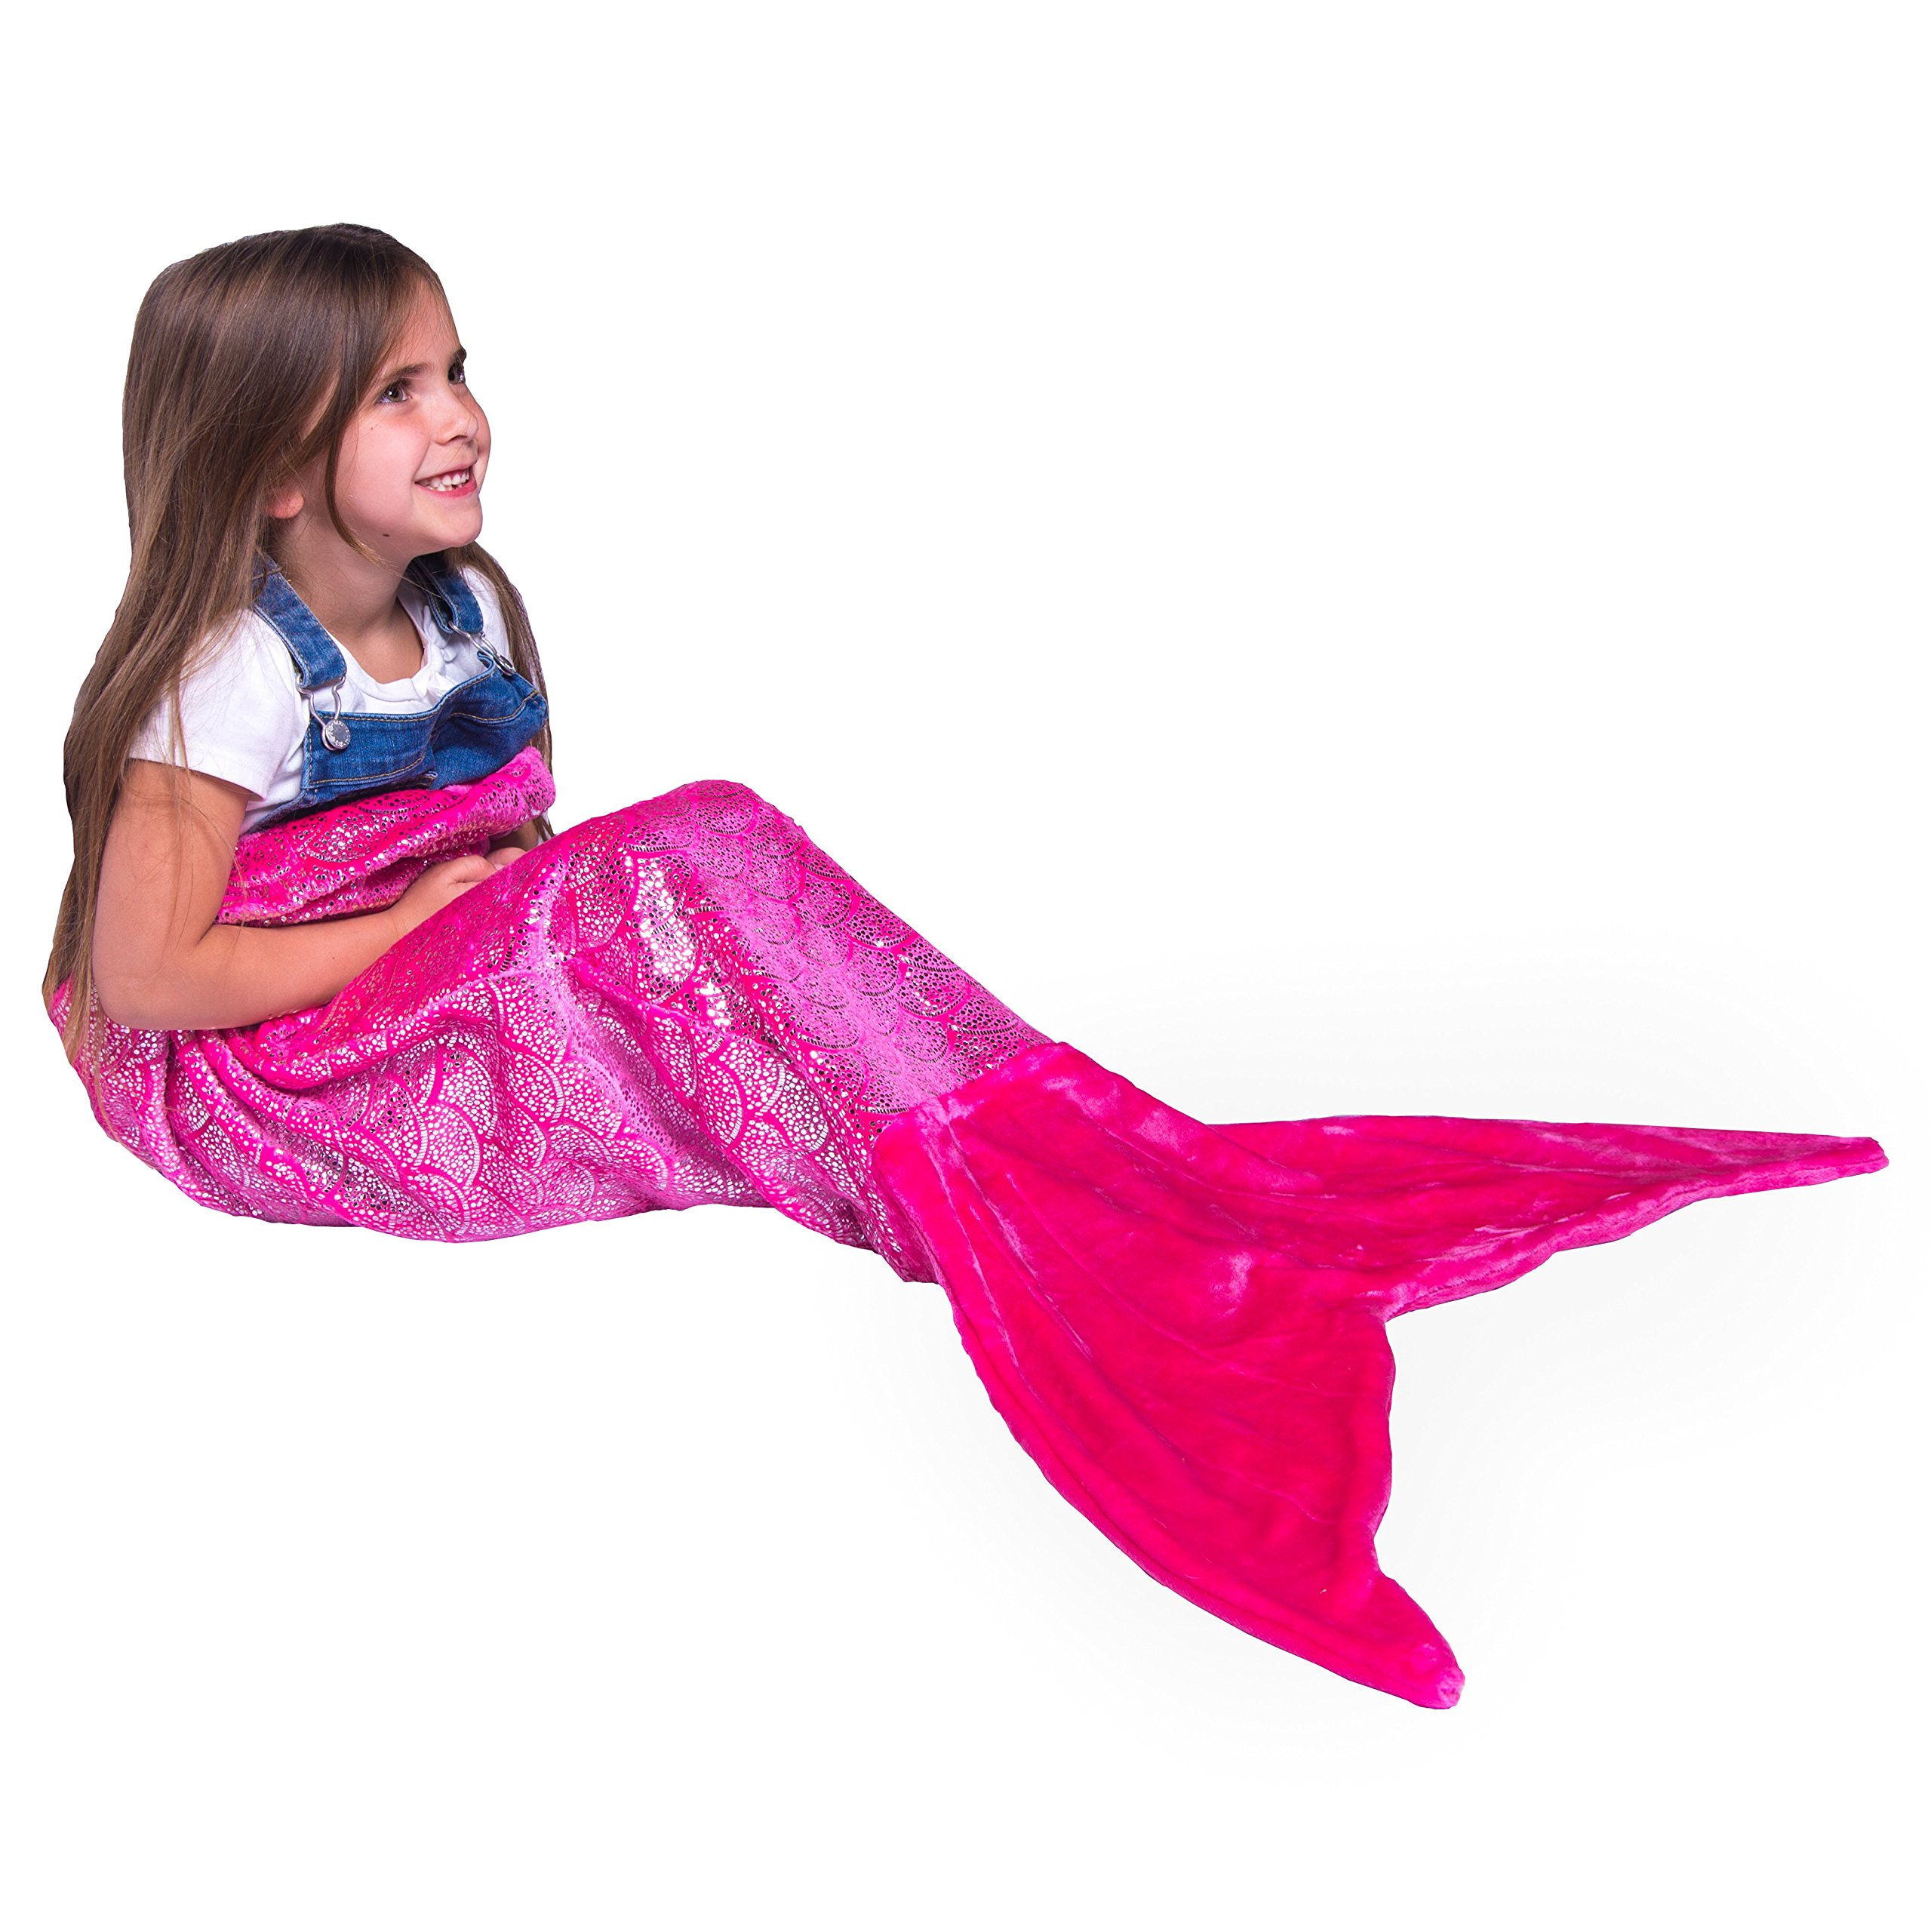 PixieCrush Mermaid Tail Blanket For Teenagers/Adults & Kids Thick, Plush Super Comfy Fleece Snuggle Blanket With Double Stitching, Keep Feet Warm (Small, Shiny Pink) by PixieCrush (Image #1)